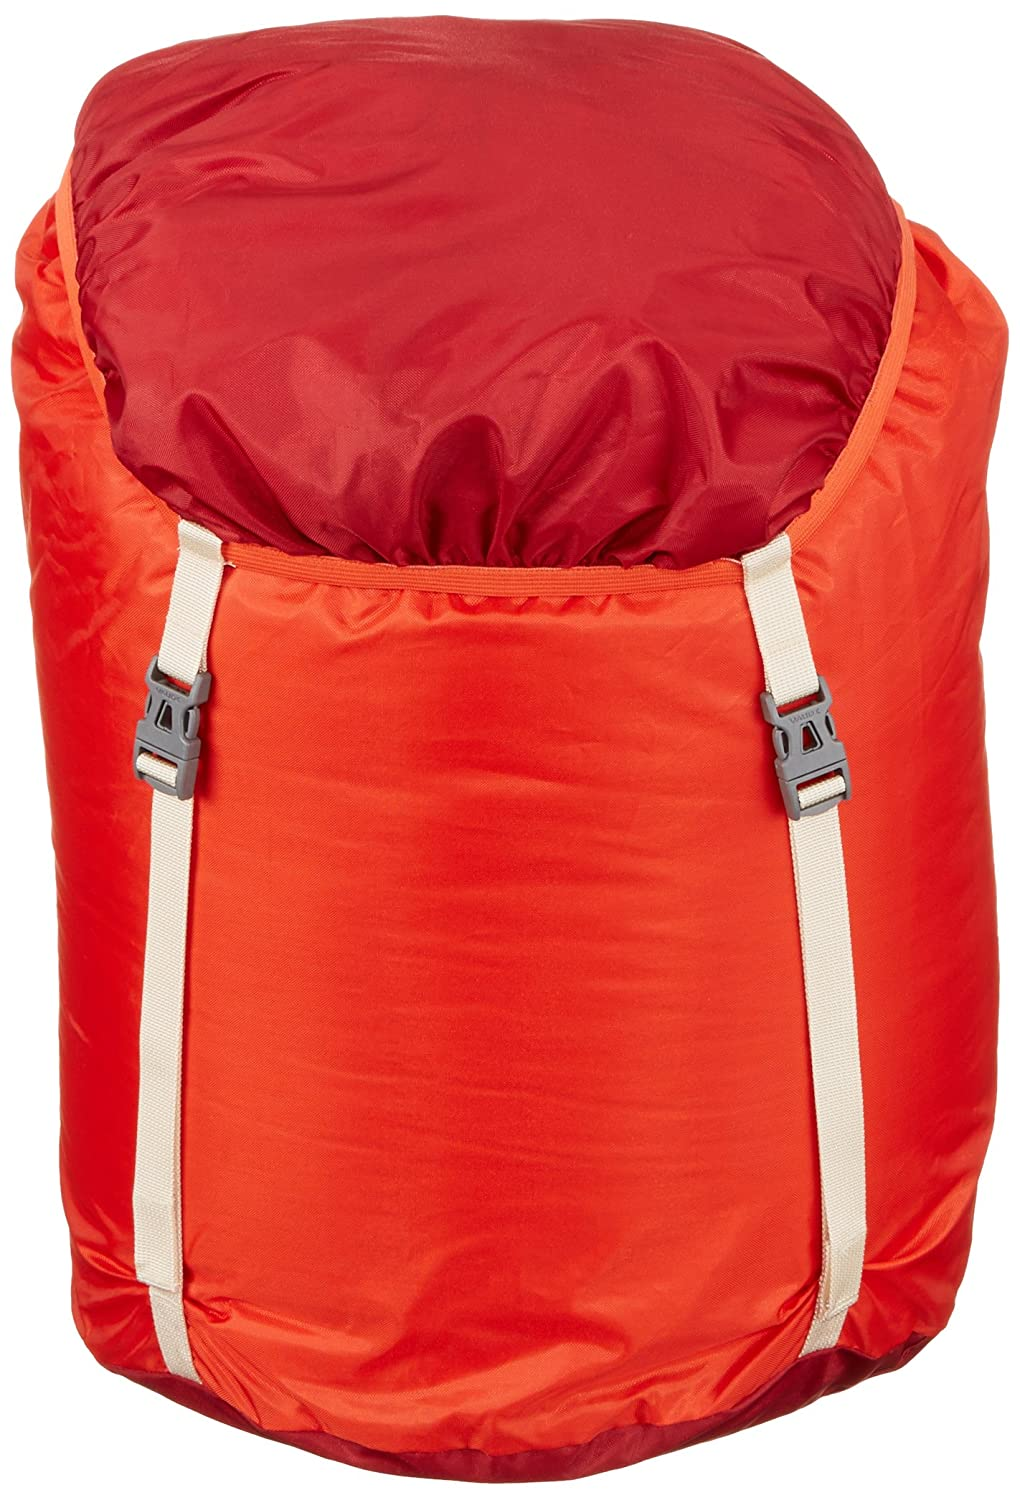 Amazon.com : VAUDE Sioux 1000 Syn - Warm 4 Season Synthetic Fill Mummy Sleeping Bag - Perfect for Camping, Hiking and Backpacking : Sports & Outdoors